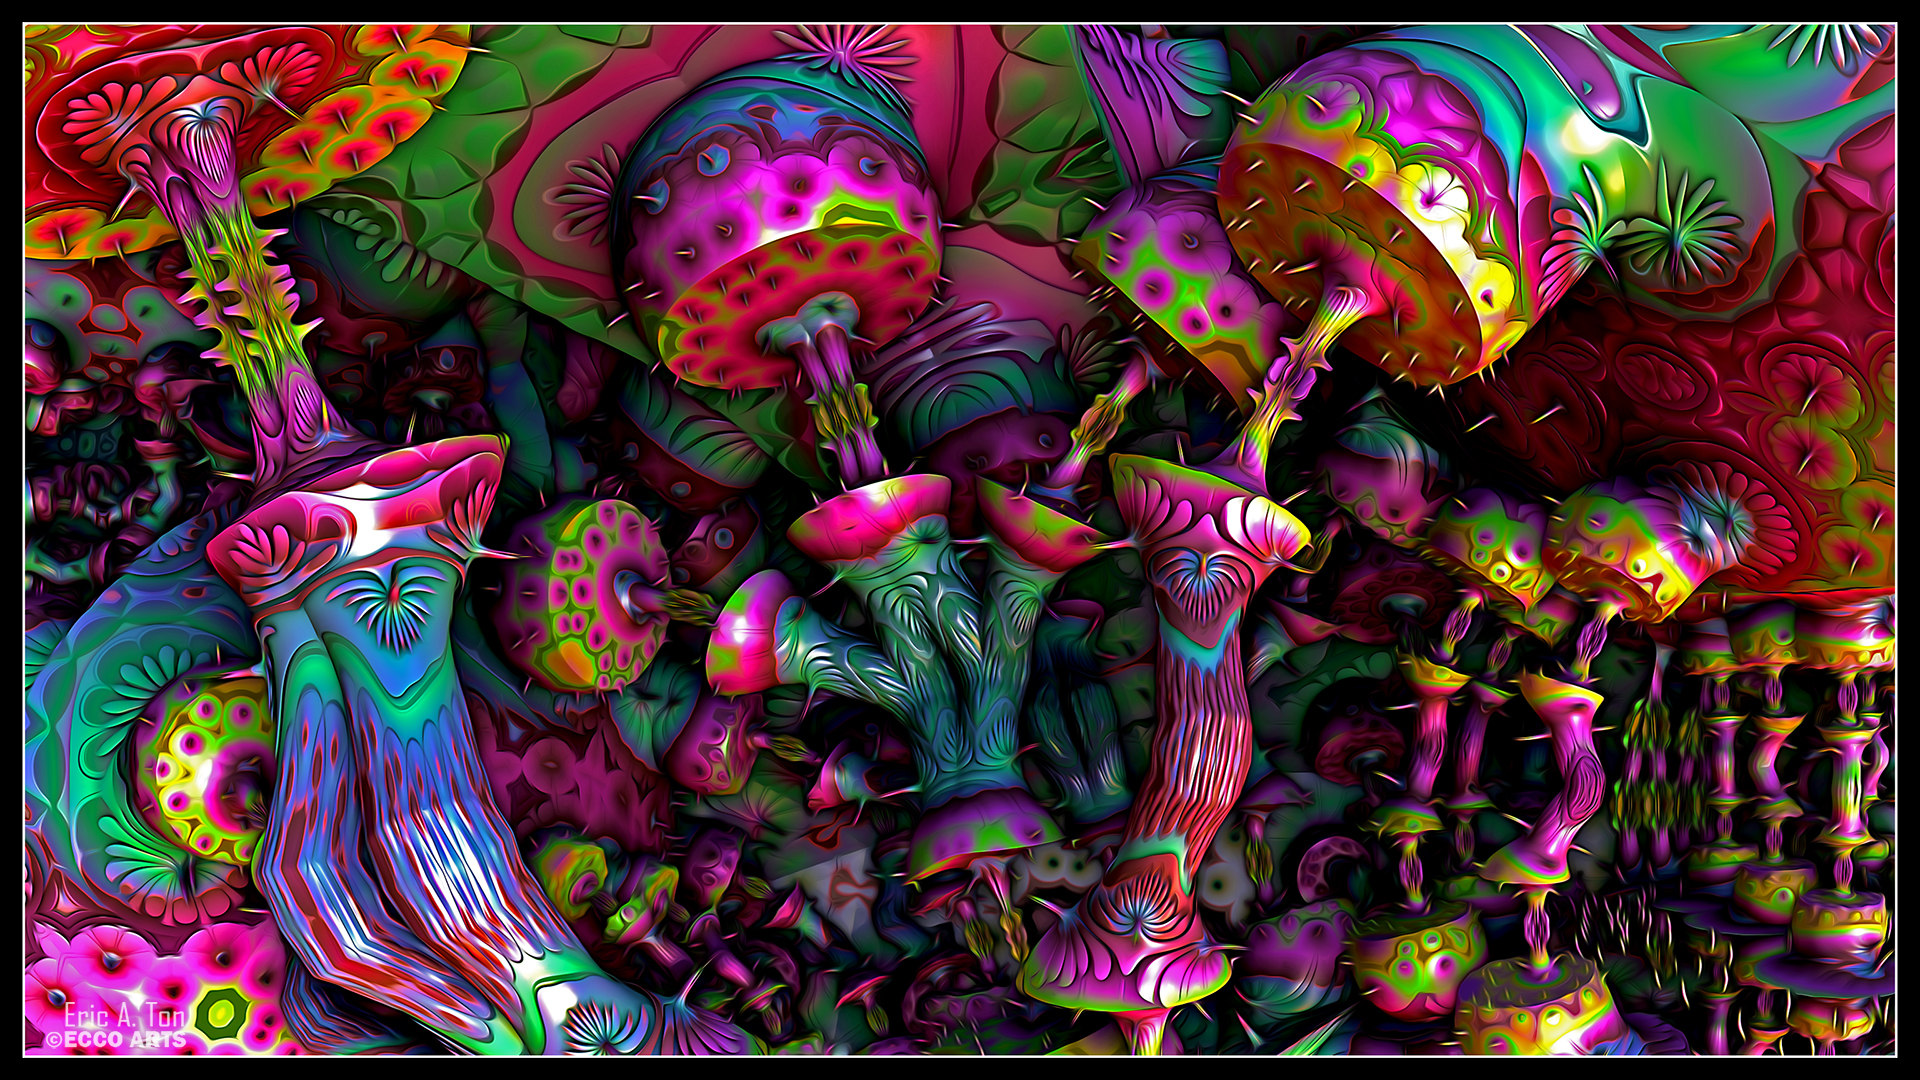 psychedelic mushrooms by eccoarts digital art fractal art fractal 1920x1080